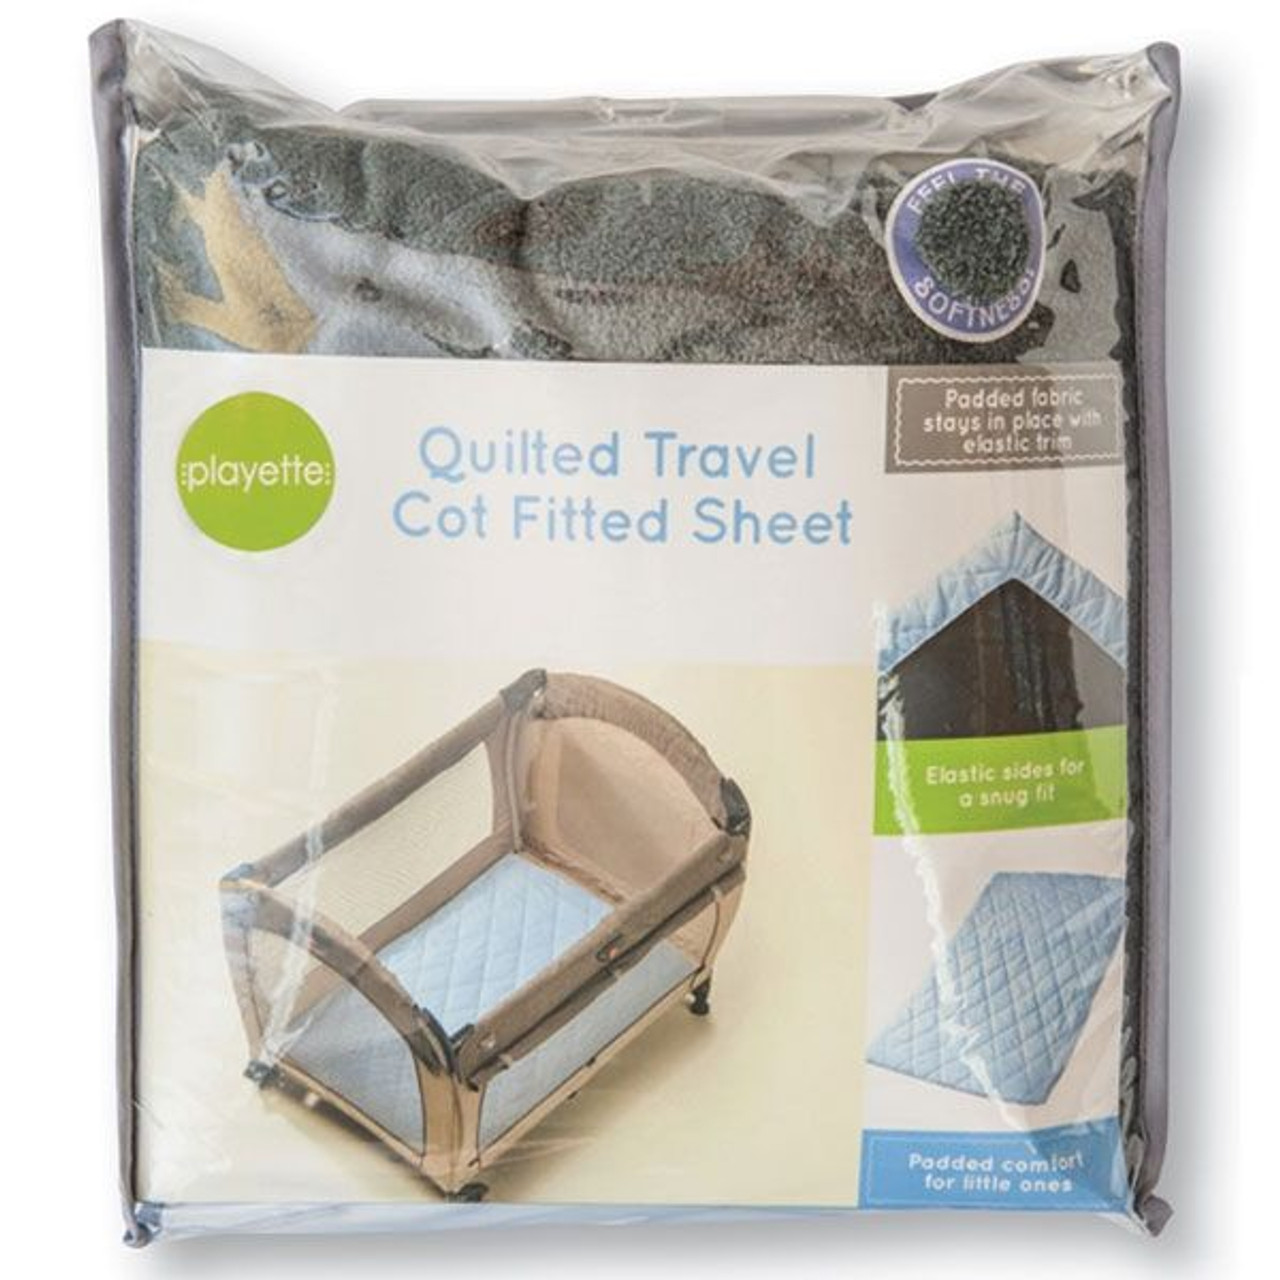 Playette Quilted Travel Cot Sheet